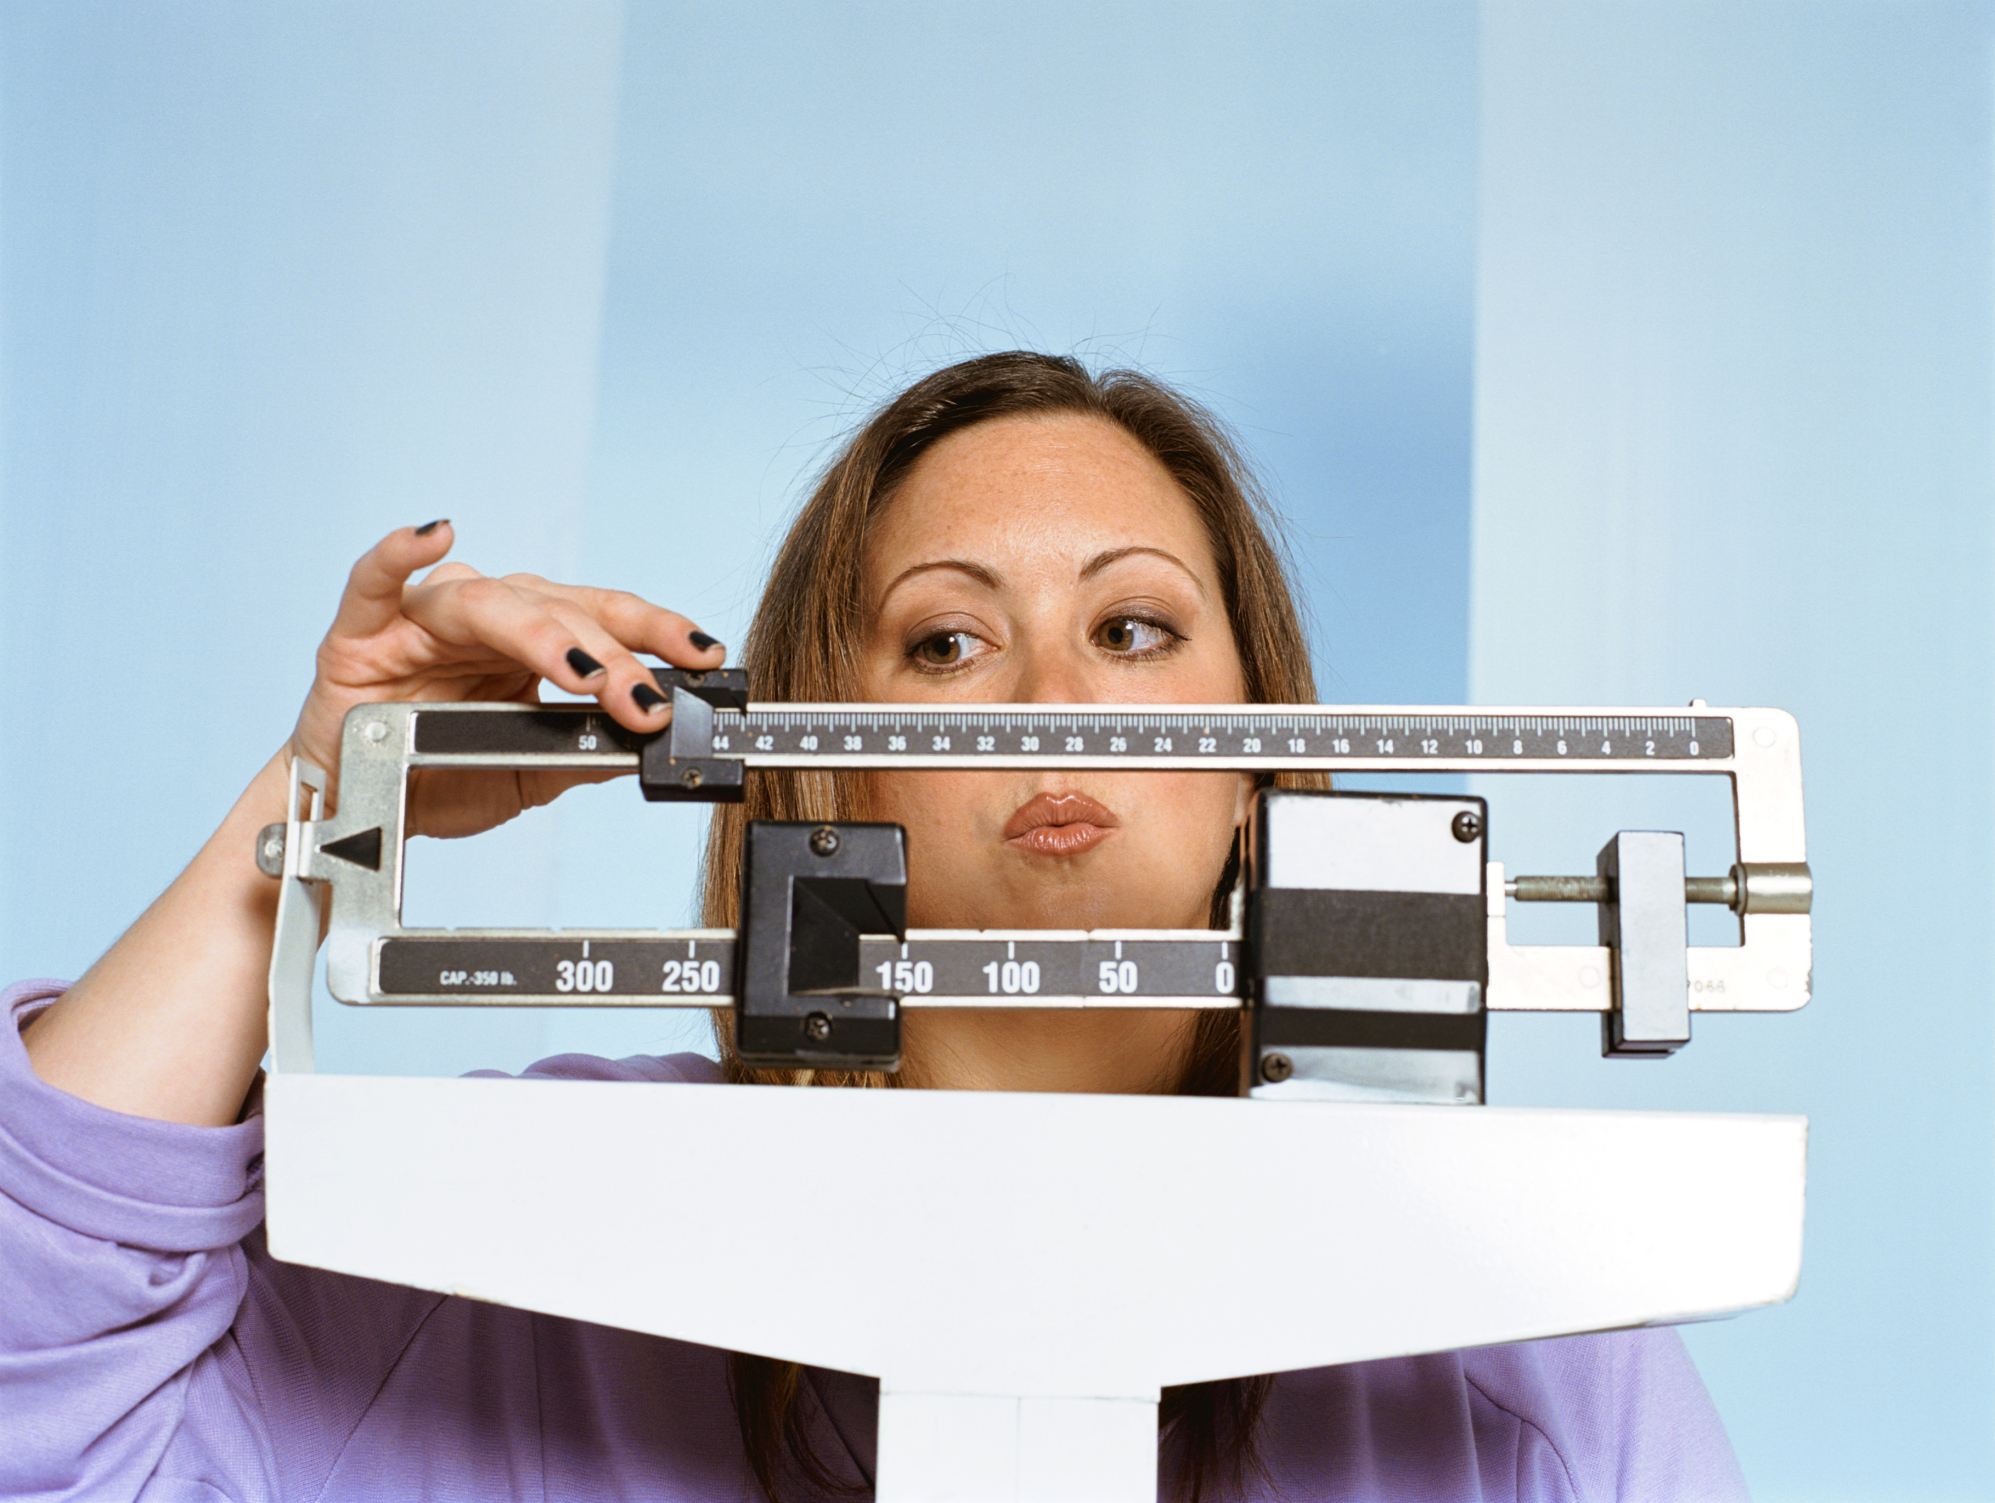 list rapid weight loss tricks